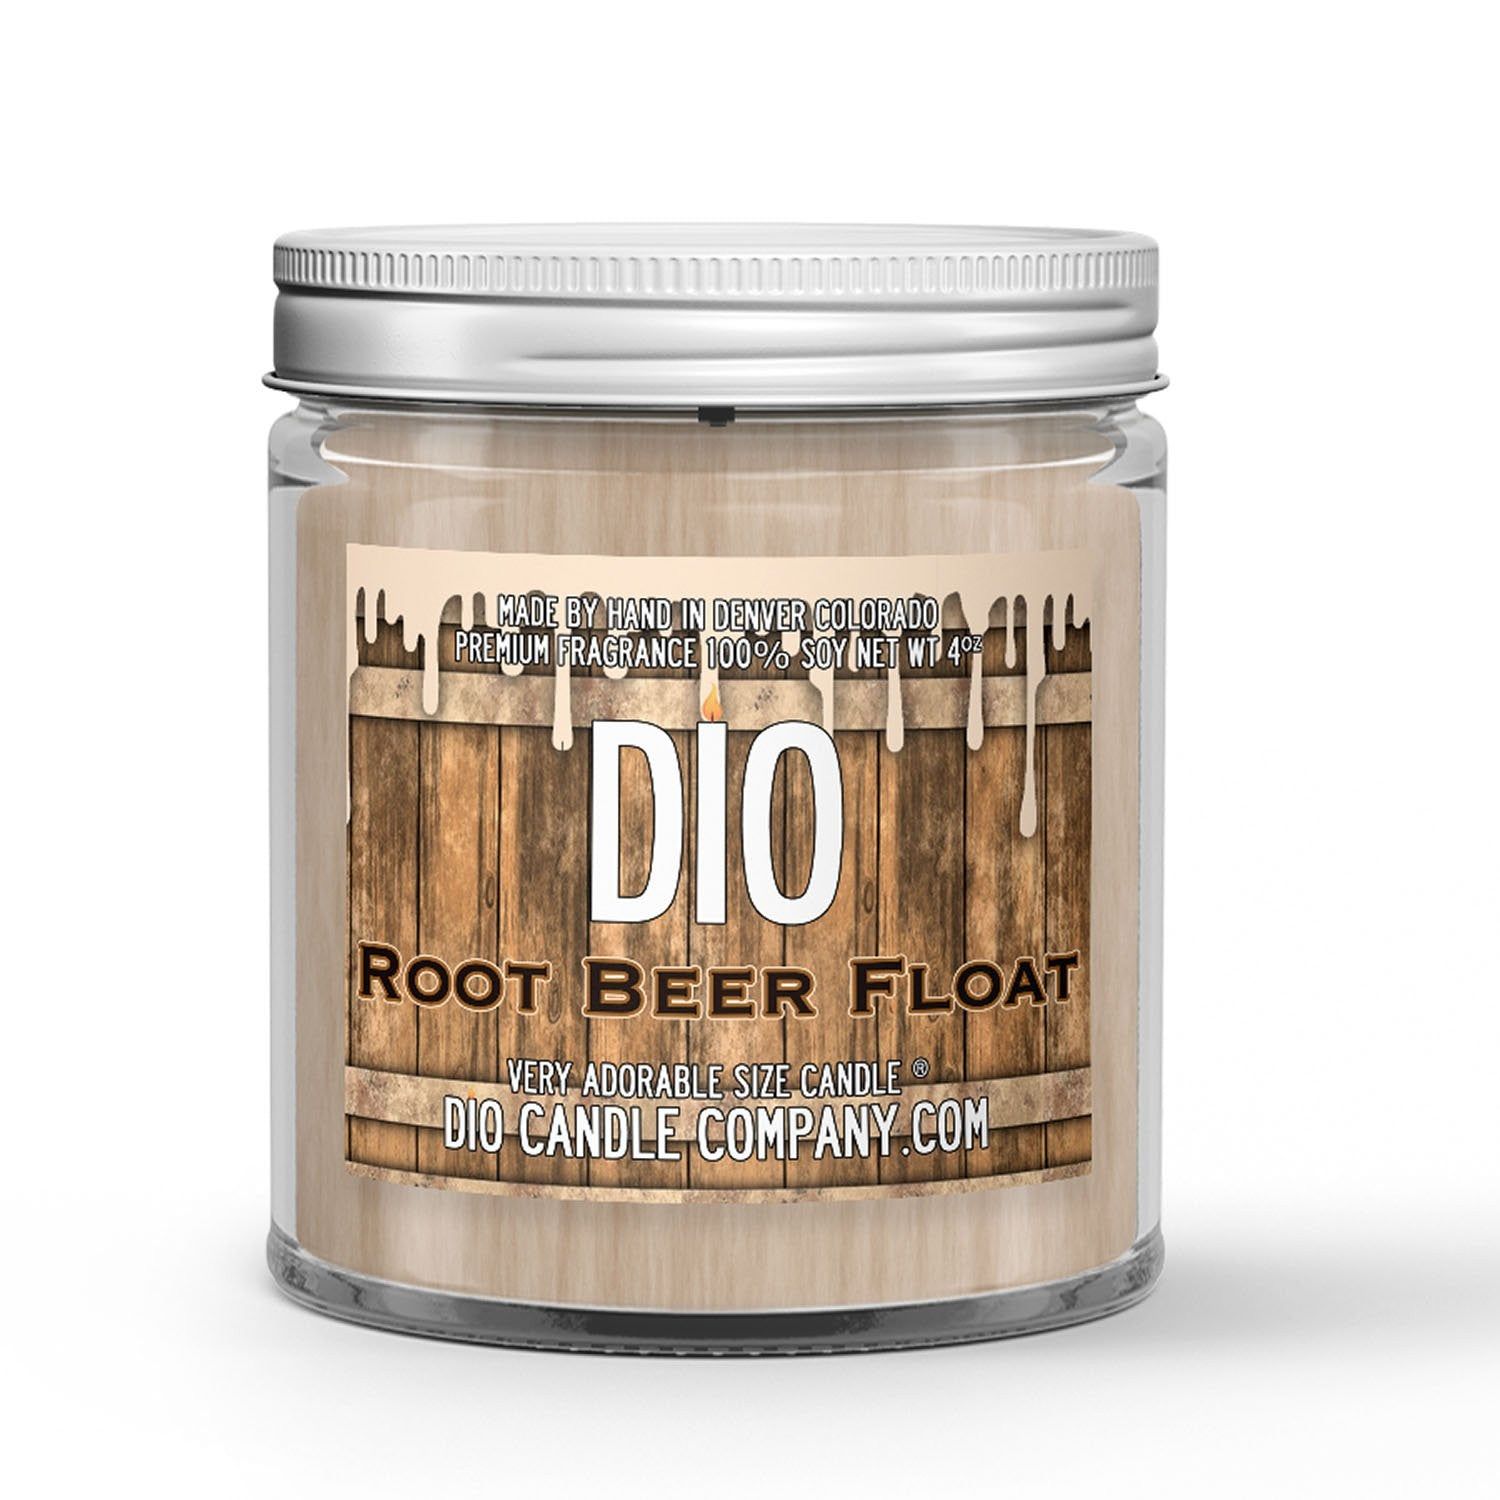 Root Beer Float Candle - Root Beer - Ice Cream - 4oz Very Adorable Size Candle® - Dio Candle Company